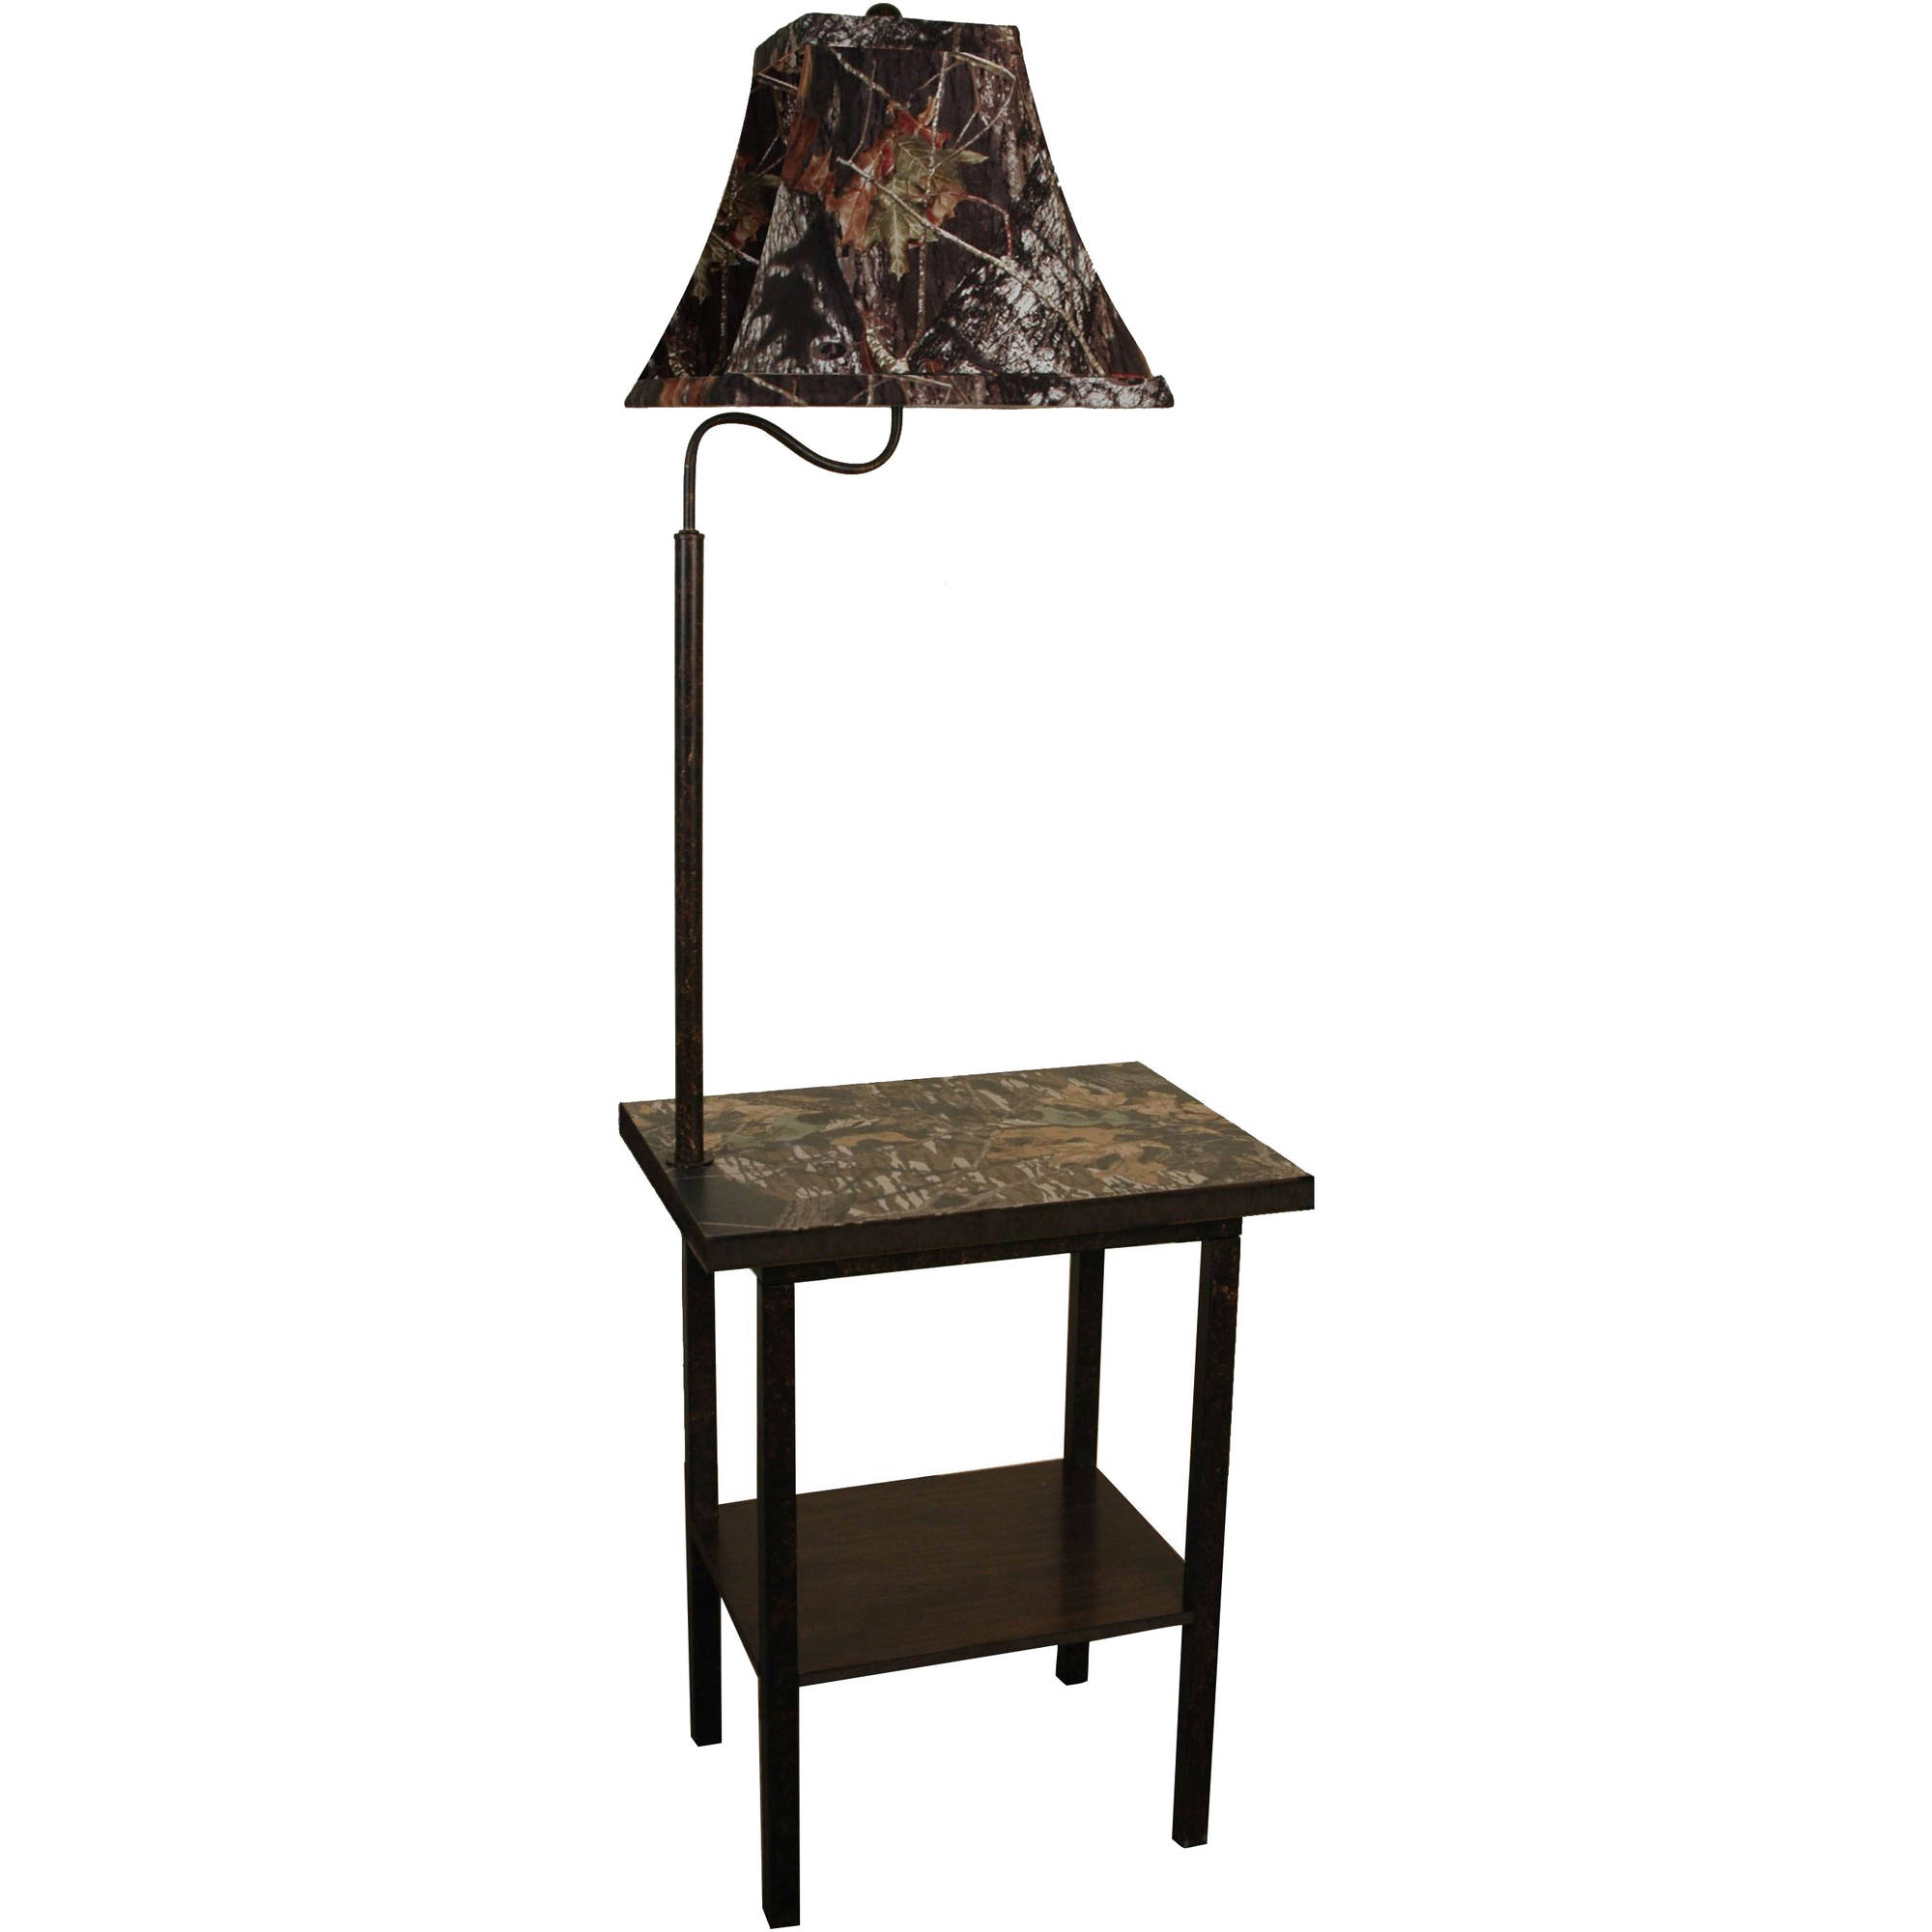 10 Reasons To Buy End Tables With Lamps Attached